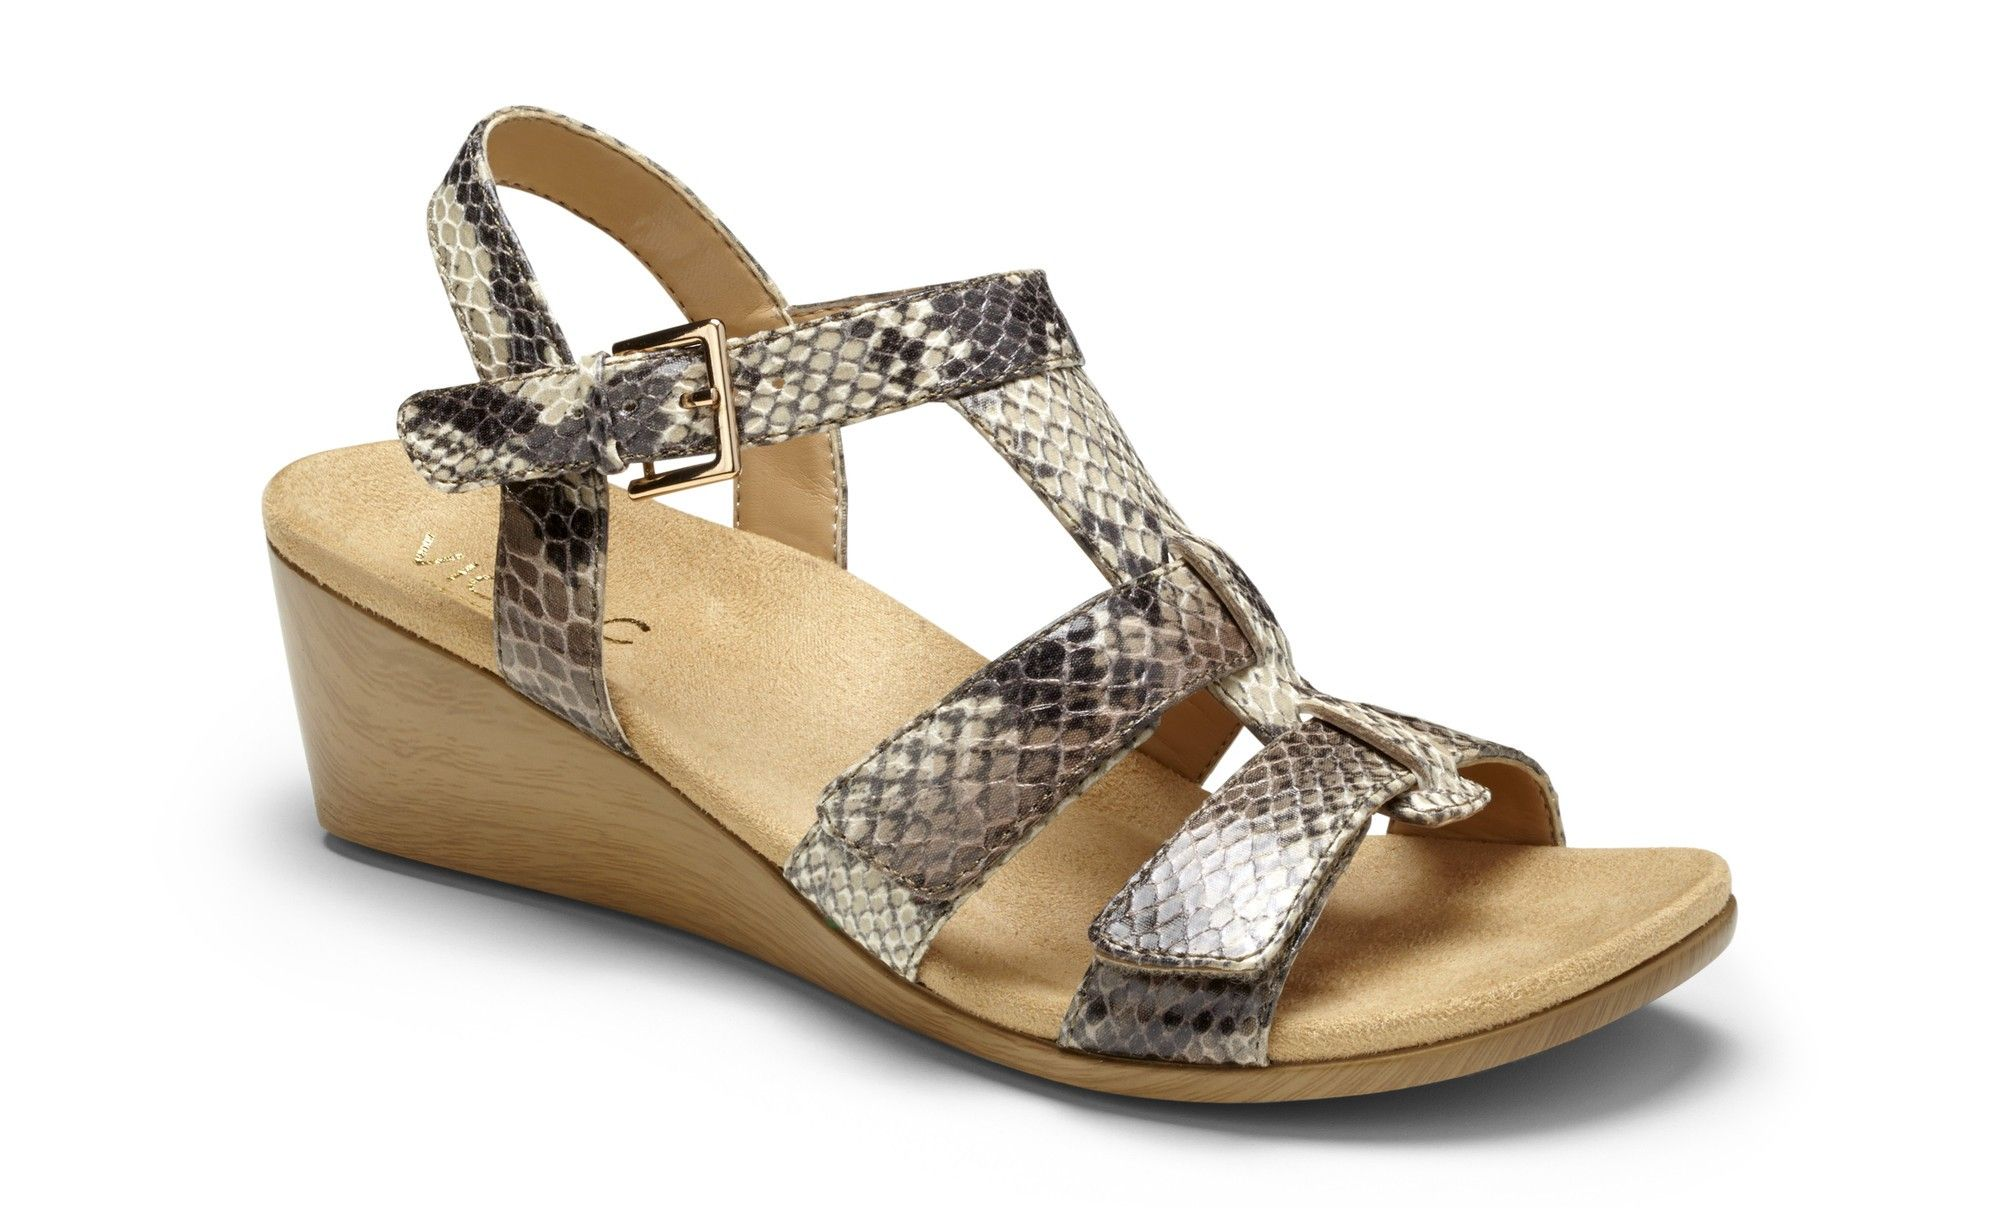 de7801e89a9 Glenda Wedge Backstrap Sandal